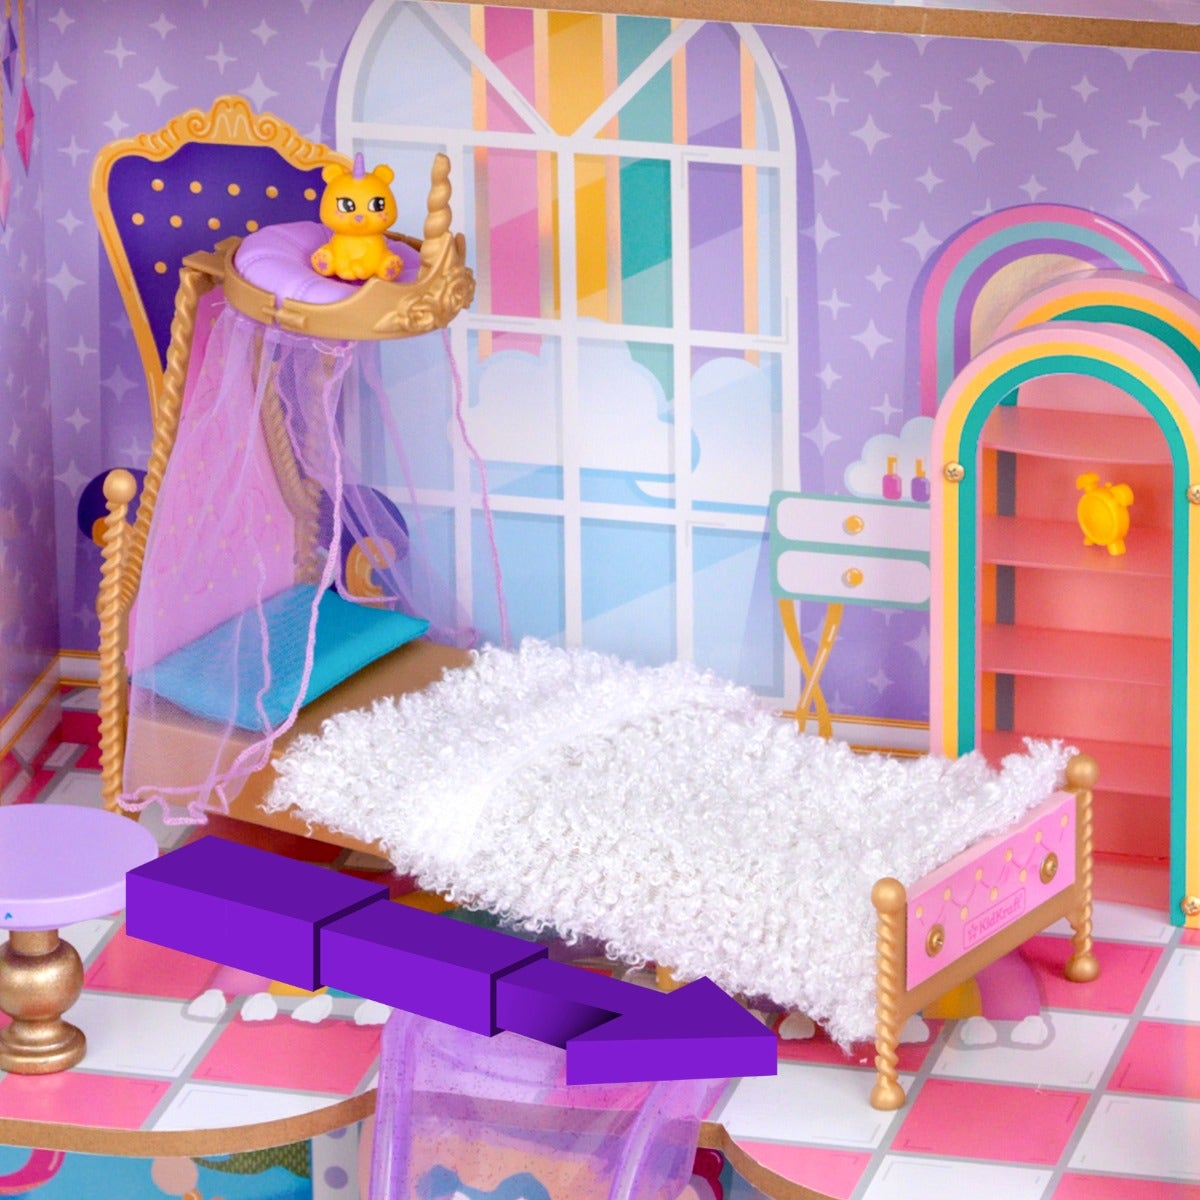 Adjust Bed to Fit: Whether it's a 5-inch collectible or a 12-inch doll or anything in between, the bed moves in and out to fit perfectly.